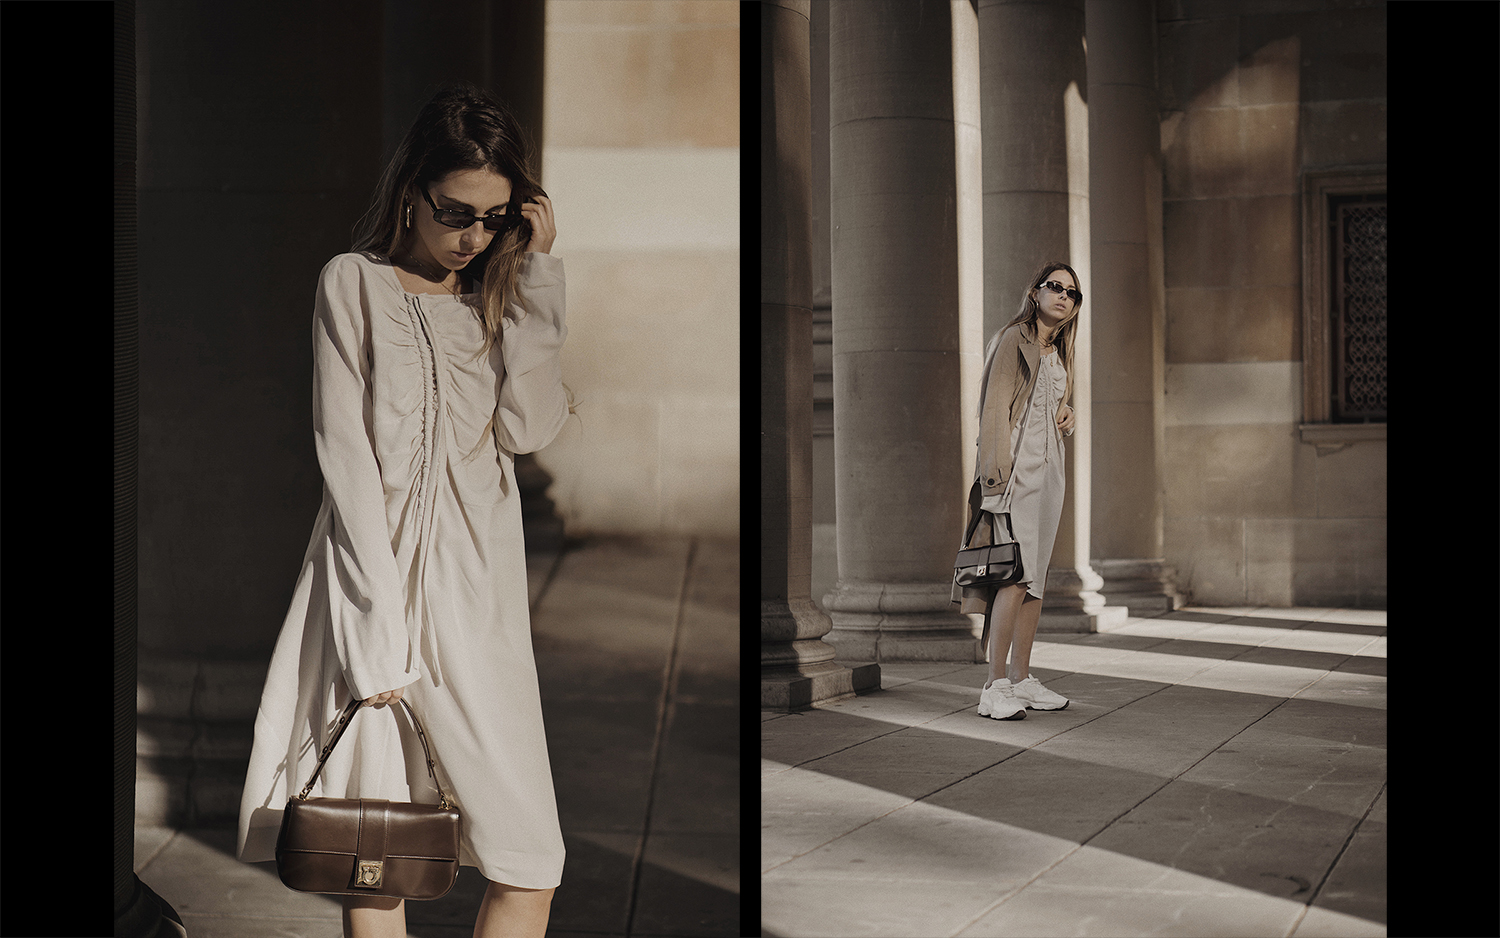 marni_dress_ferragamo_bag_ikrush_street_style_outfit_nyfw_mfw_zara_trench_coat_ugly_father_sneakers_the_white_ocean_lena_juice_13